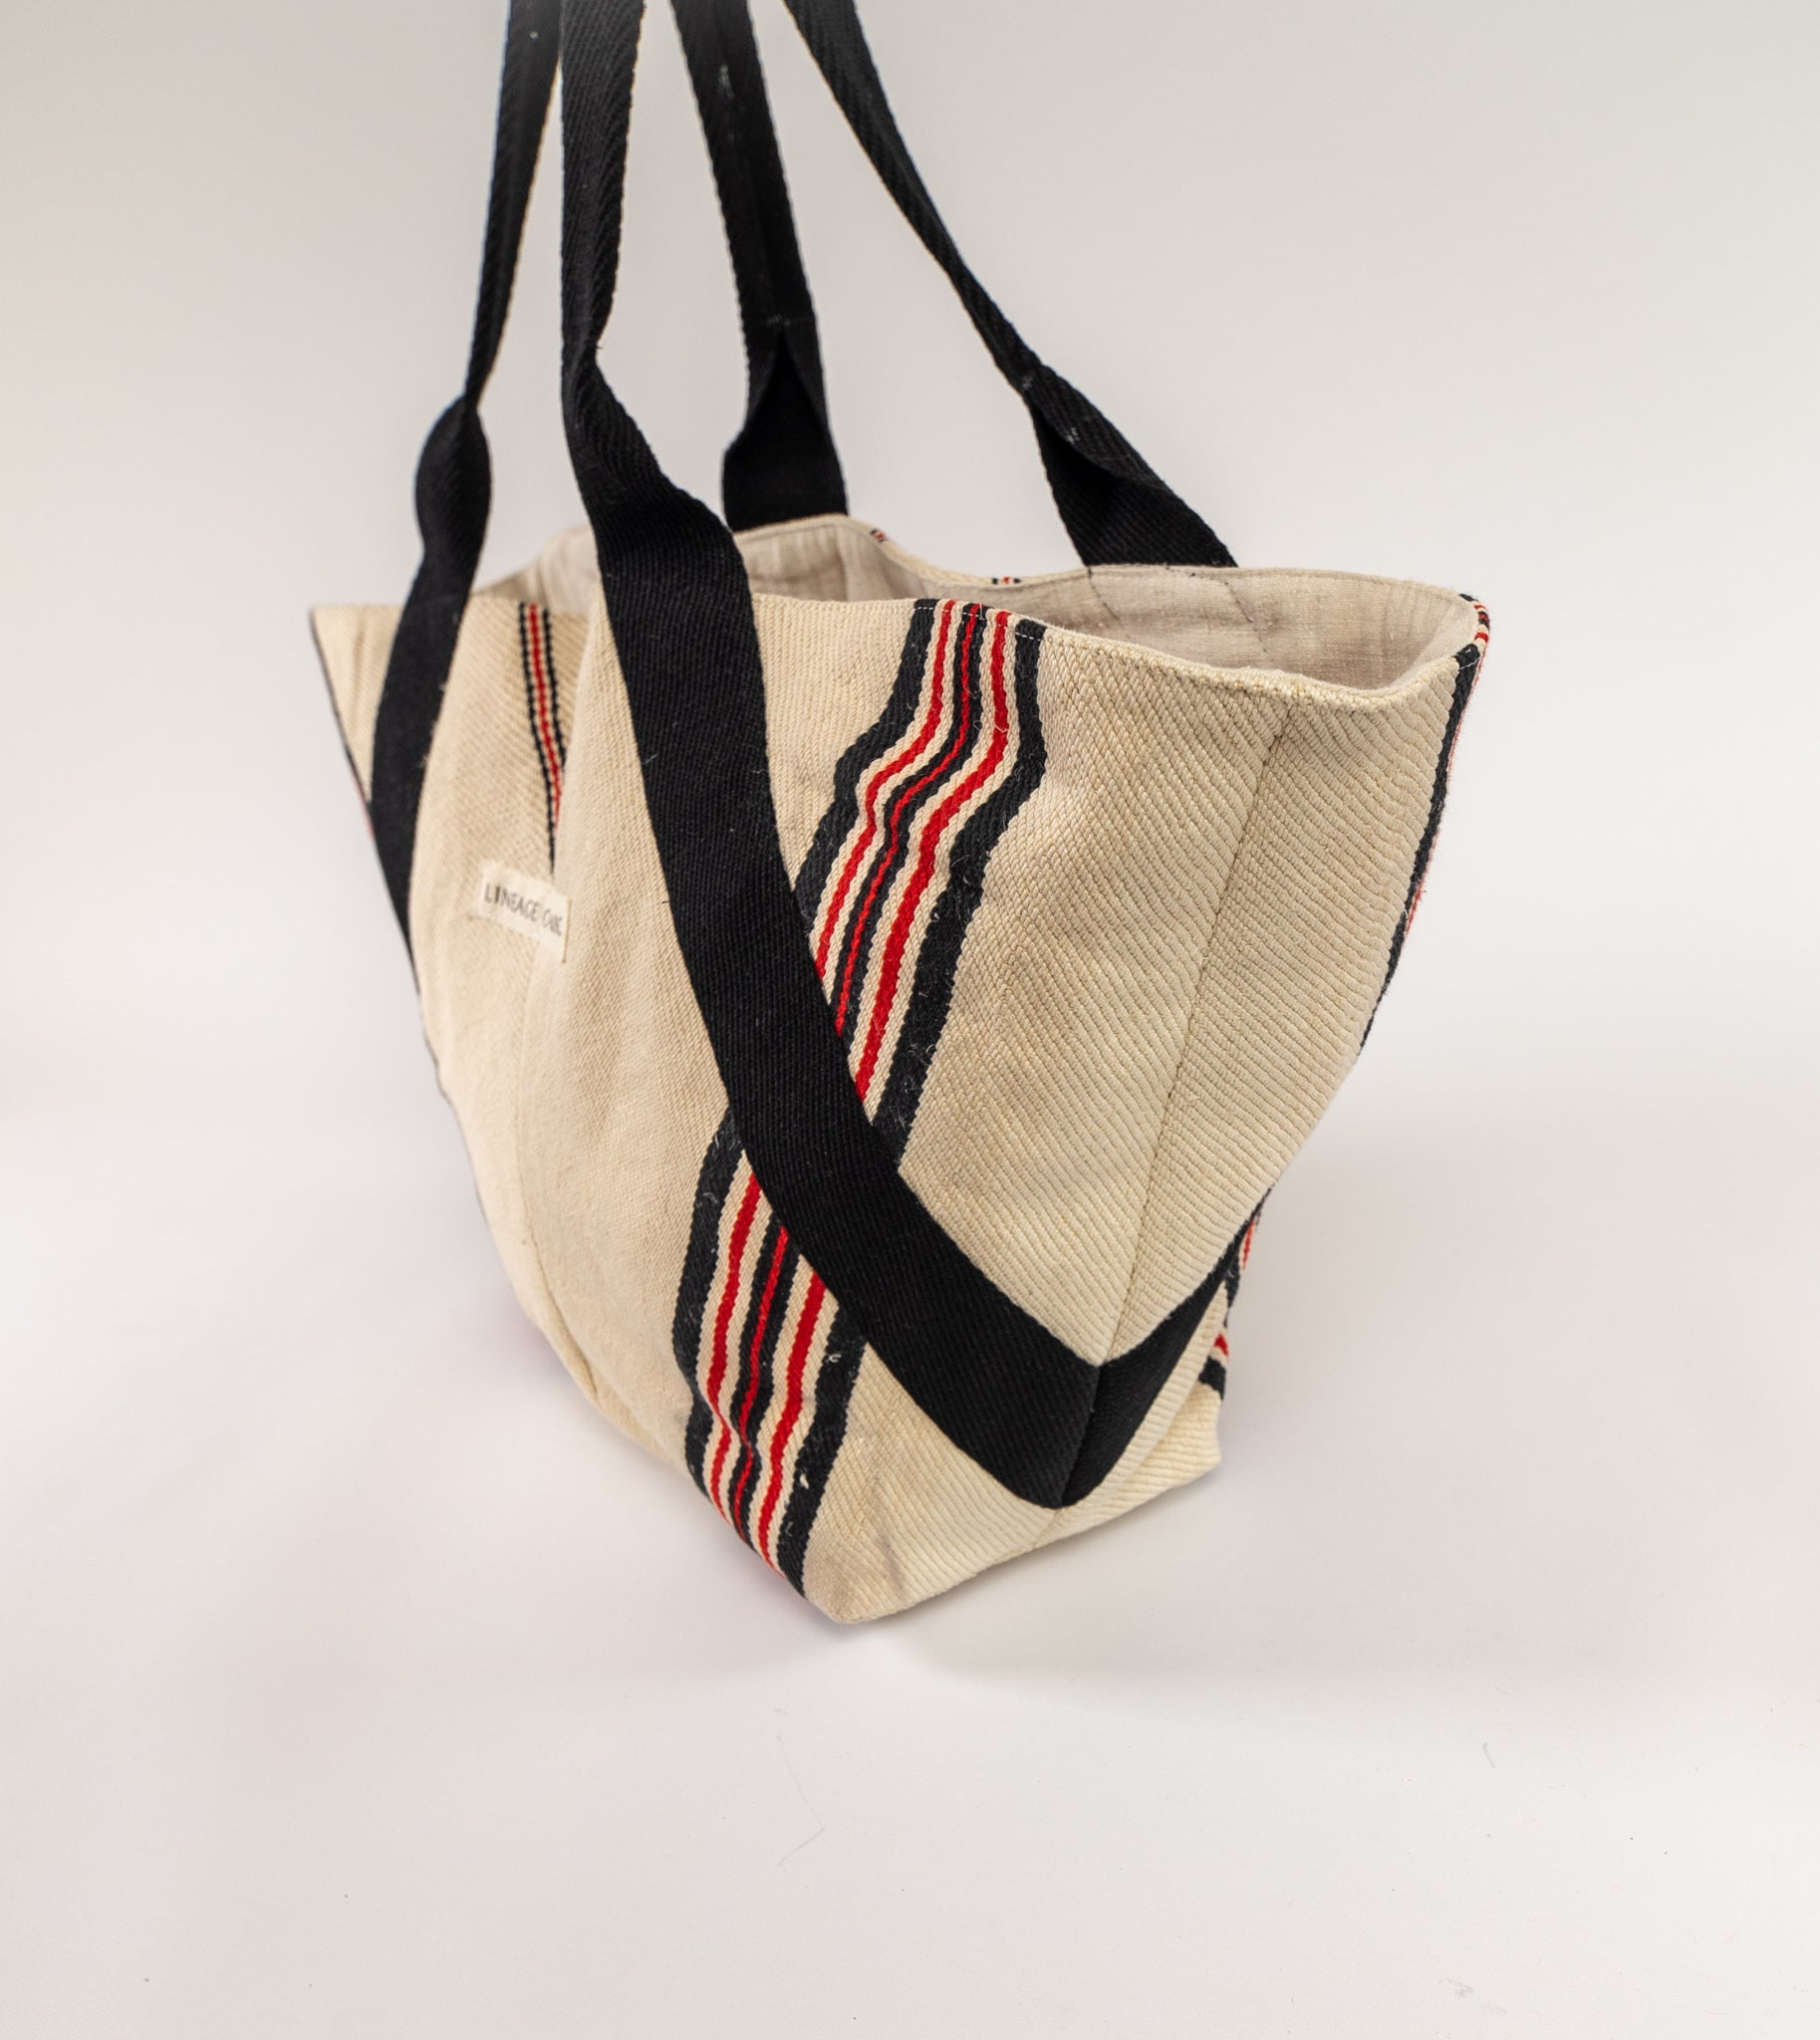 Bag: Handwoven antique hemp grain sack, cotton webbing - BG150